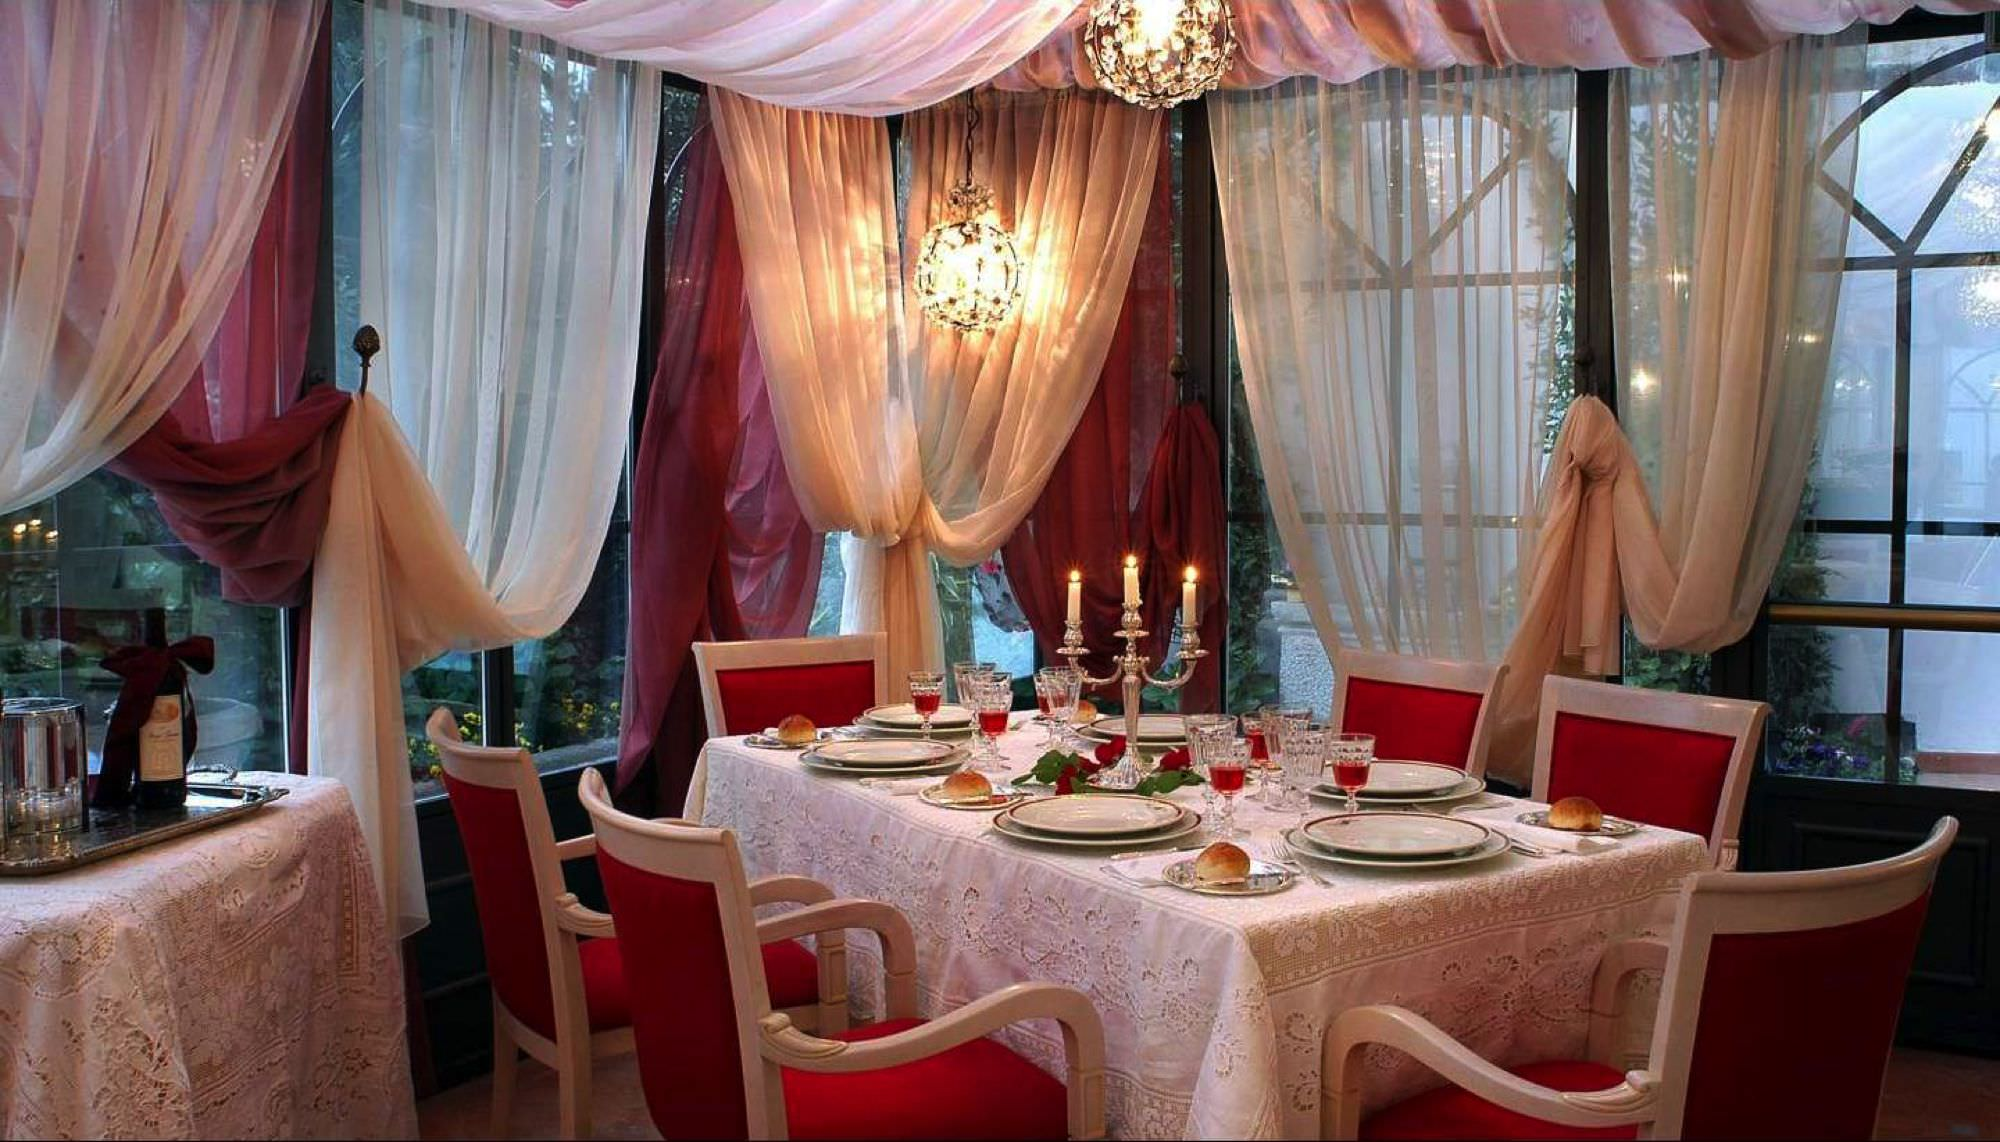 Pisa boutique hotel pisa tuscany italy wedding locations for Boutique hotel italia